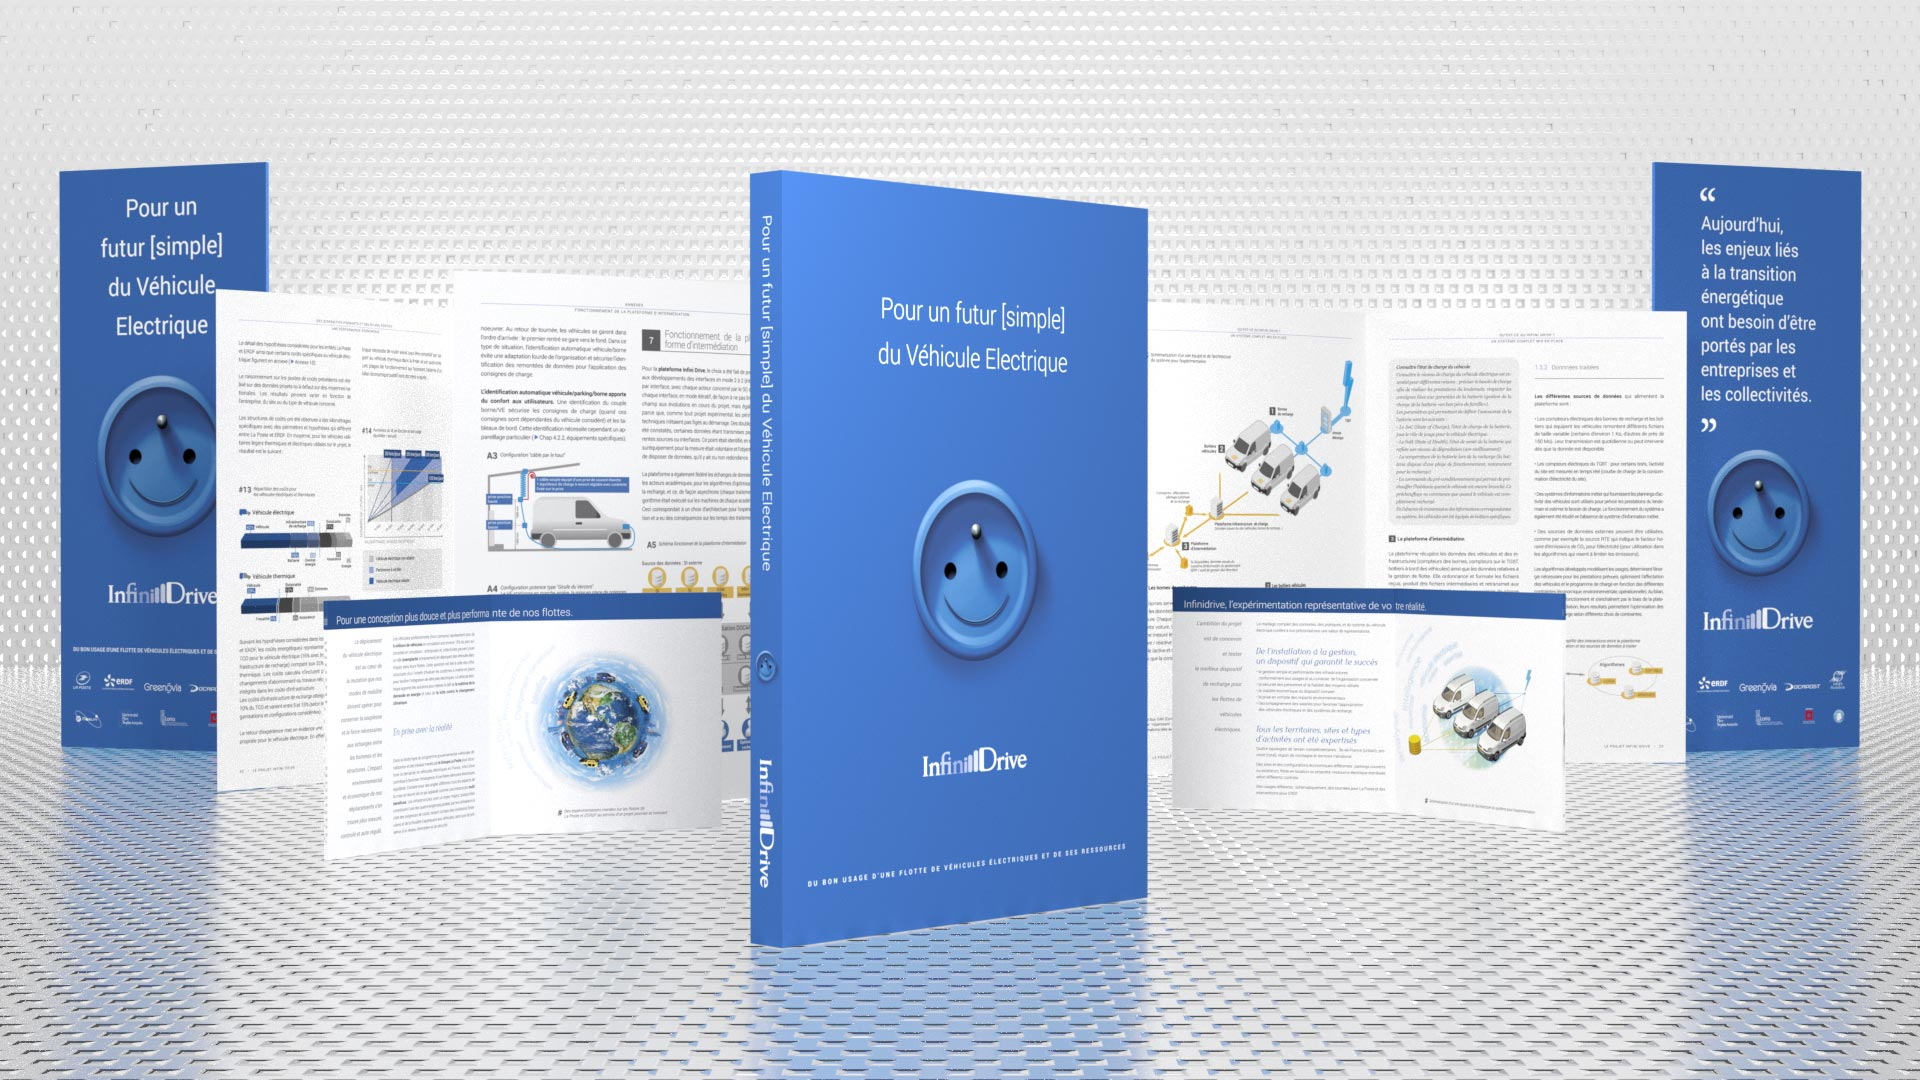 Art Direction, Illustrations and Realisation of Ademe's Infinidrive Report, Best Practices for Electric Vehicles. This report provides analysis and synthesis on Electric Vehicles from energy production to integration in corporate fleets.